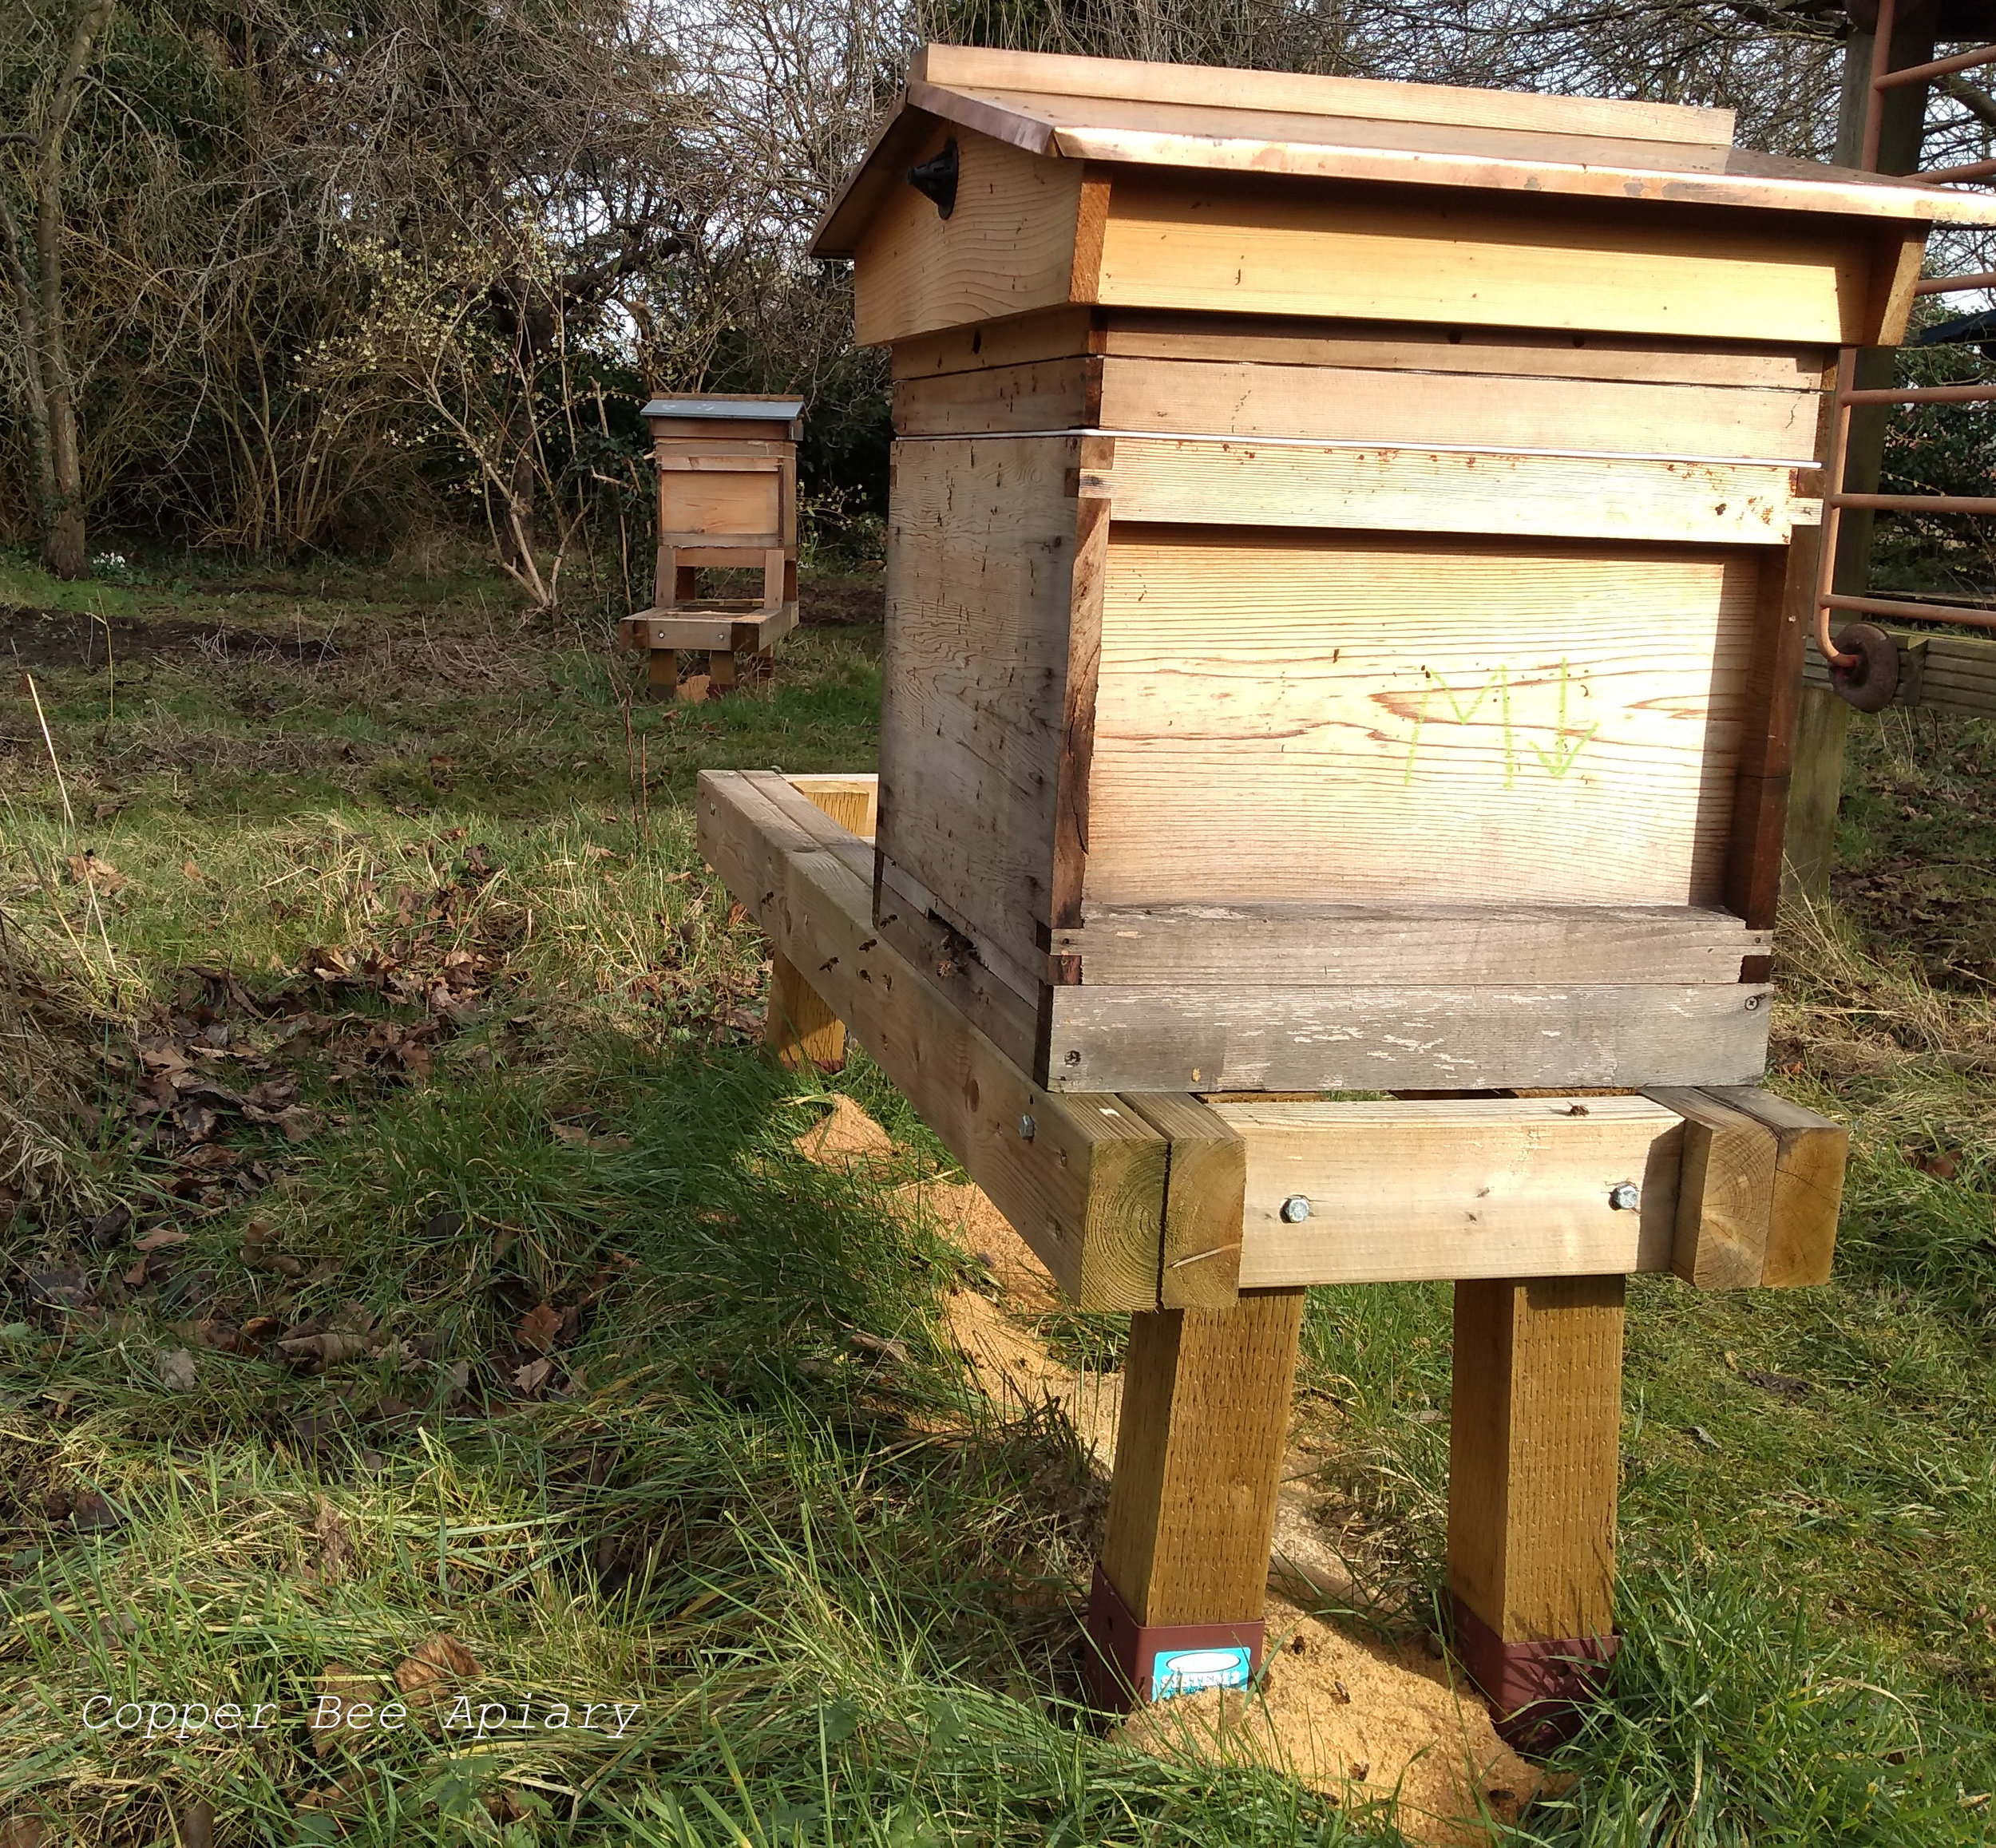 I put sawdust under the hive stands to suppress the growth of the grass there.